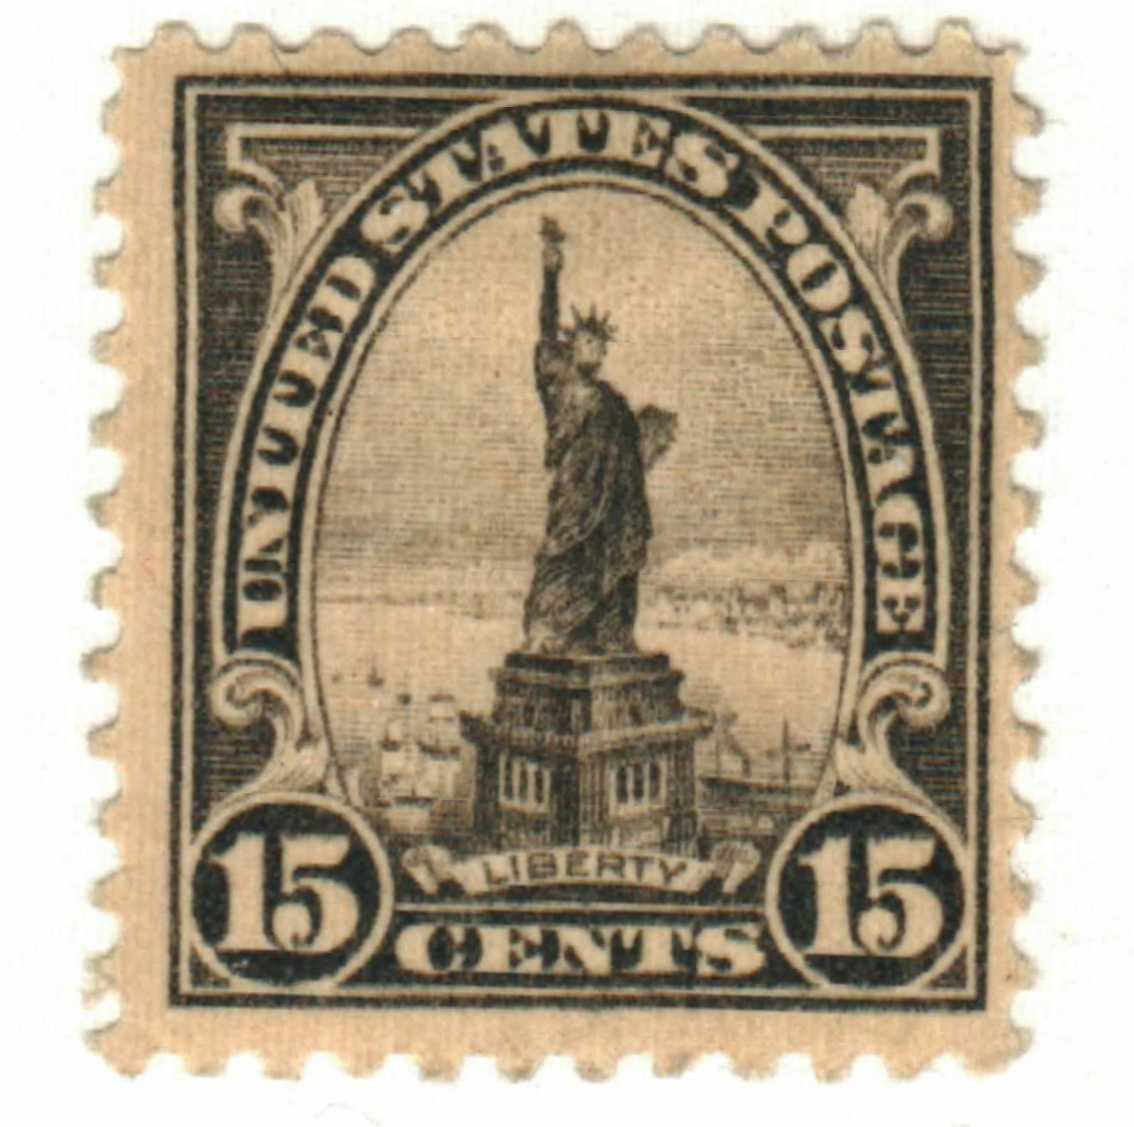 1922 15c Statue Liberty Gray For Sale At Mystic Stamp Company